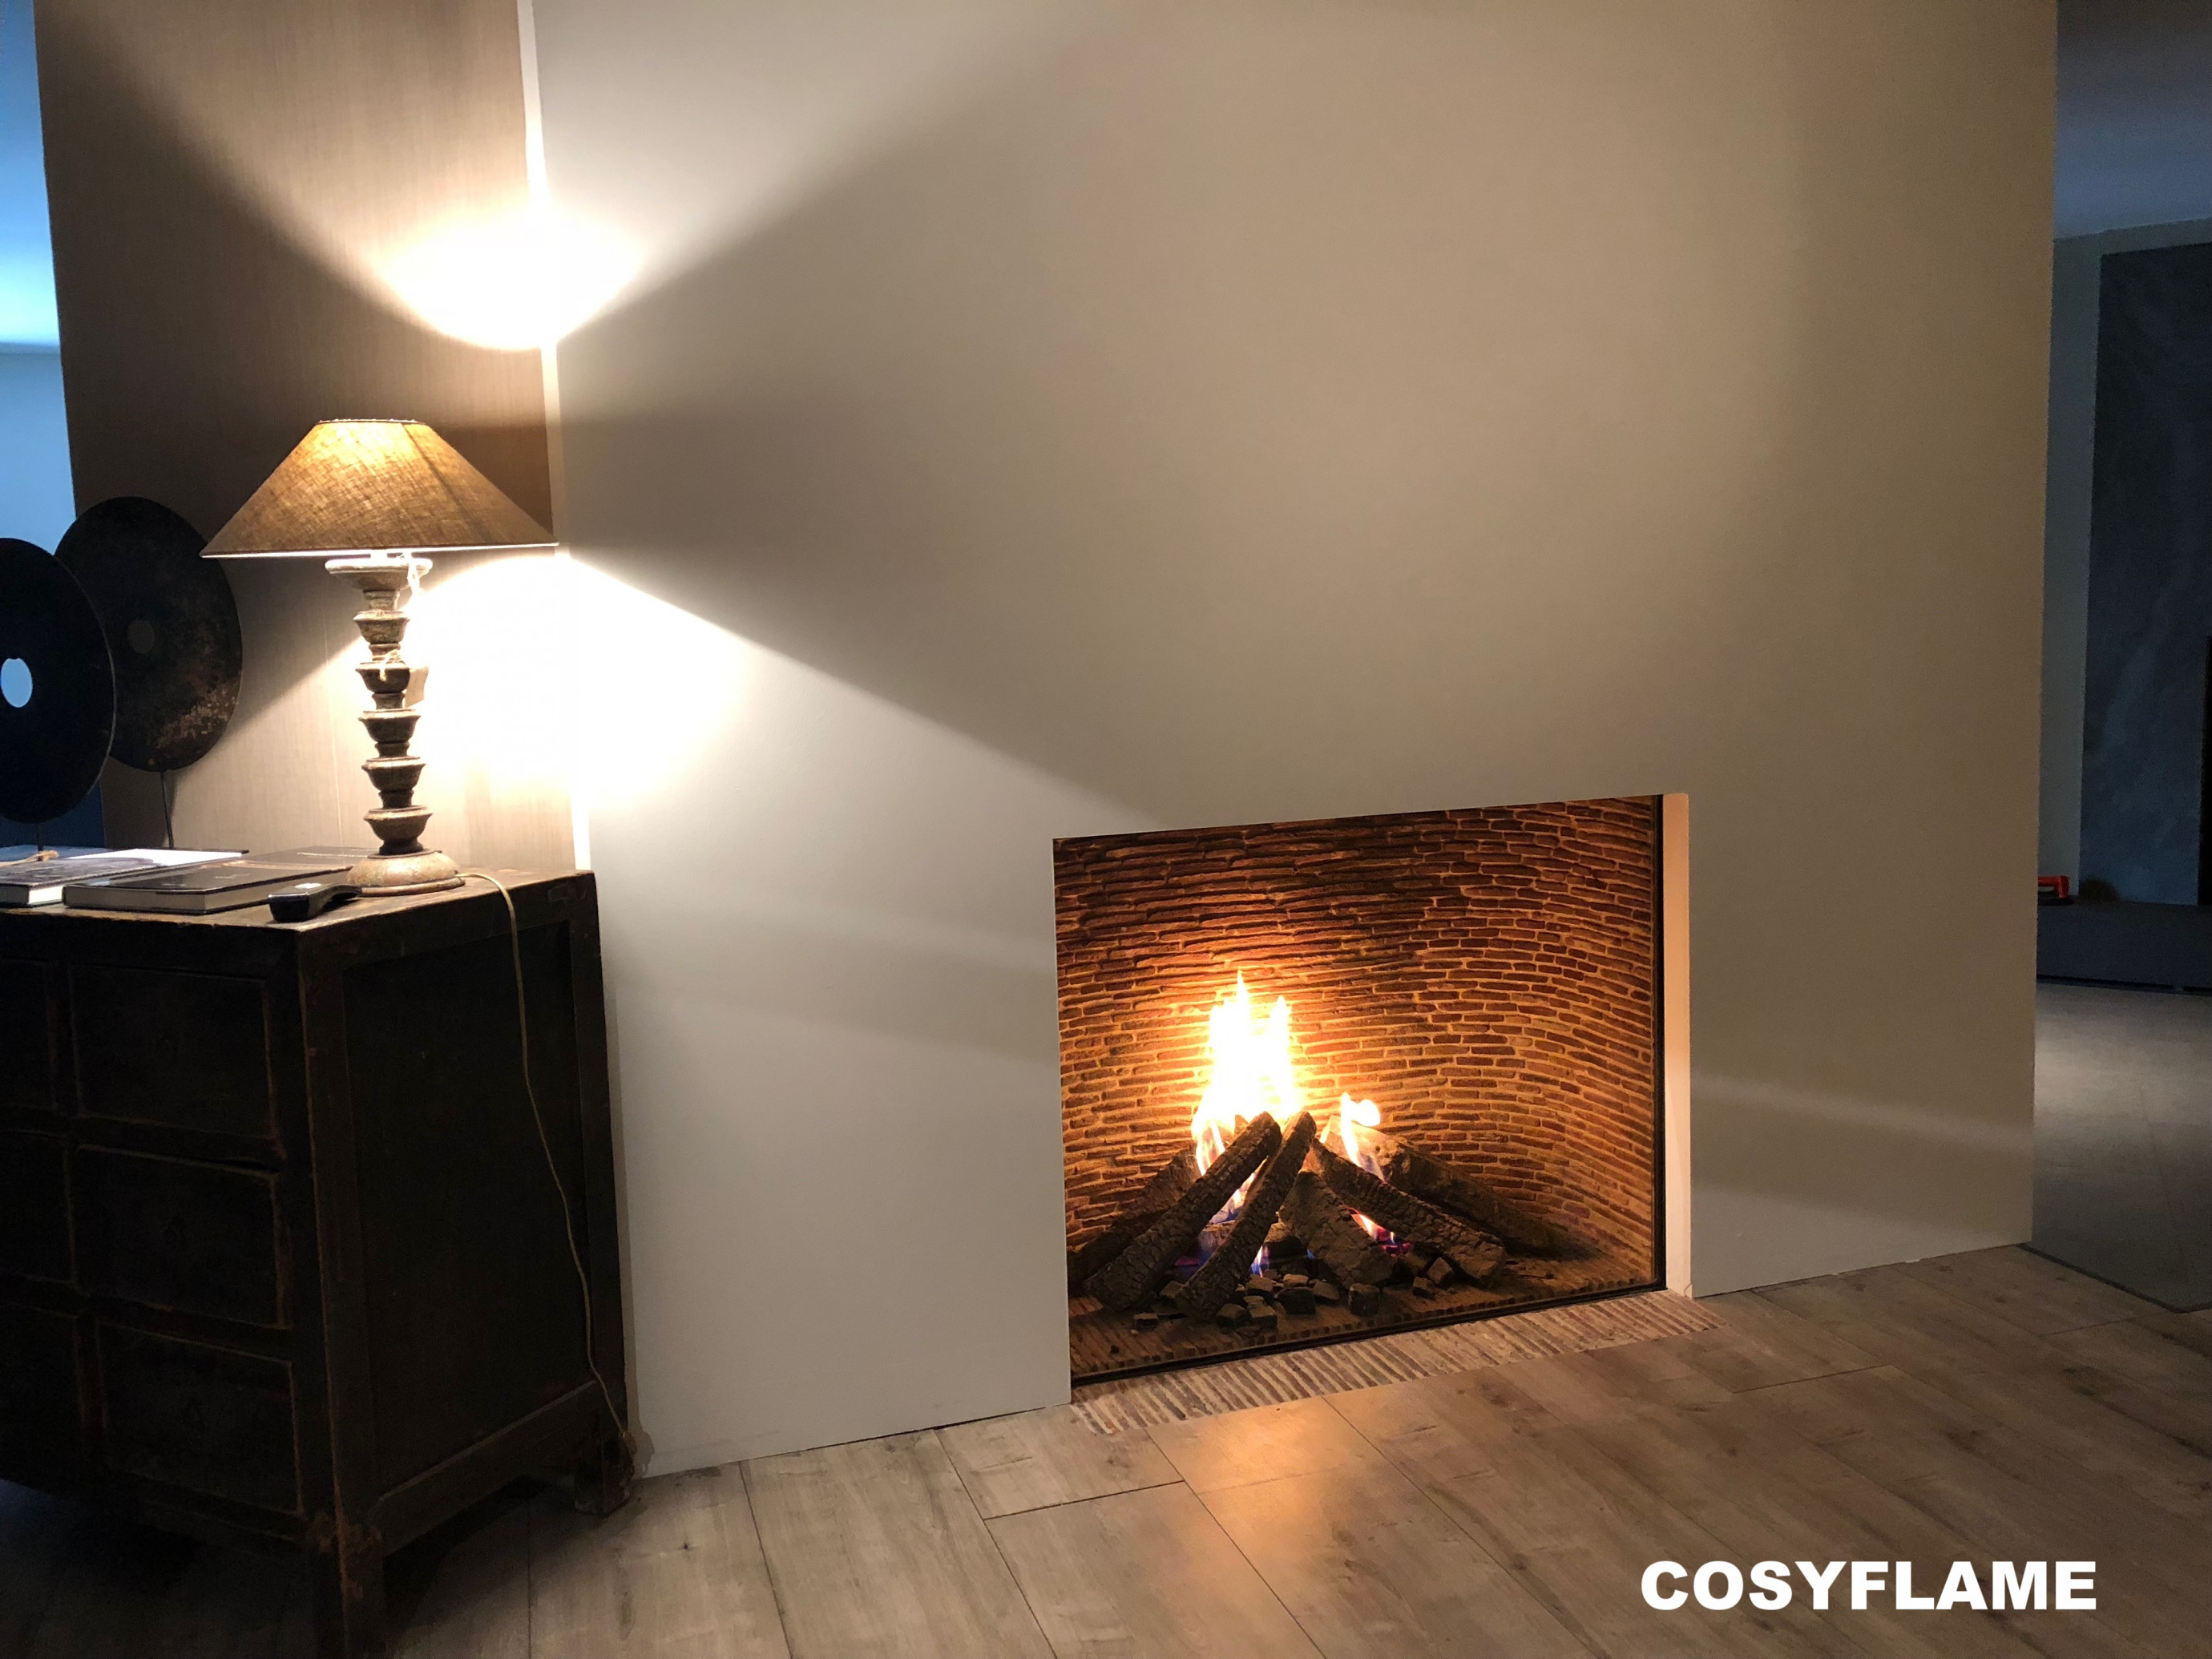 Cosyflame-Rode-pannenstrips-file4-1